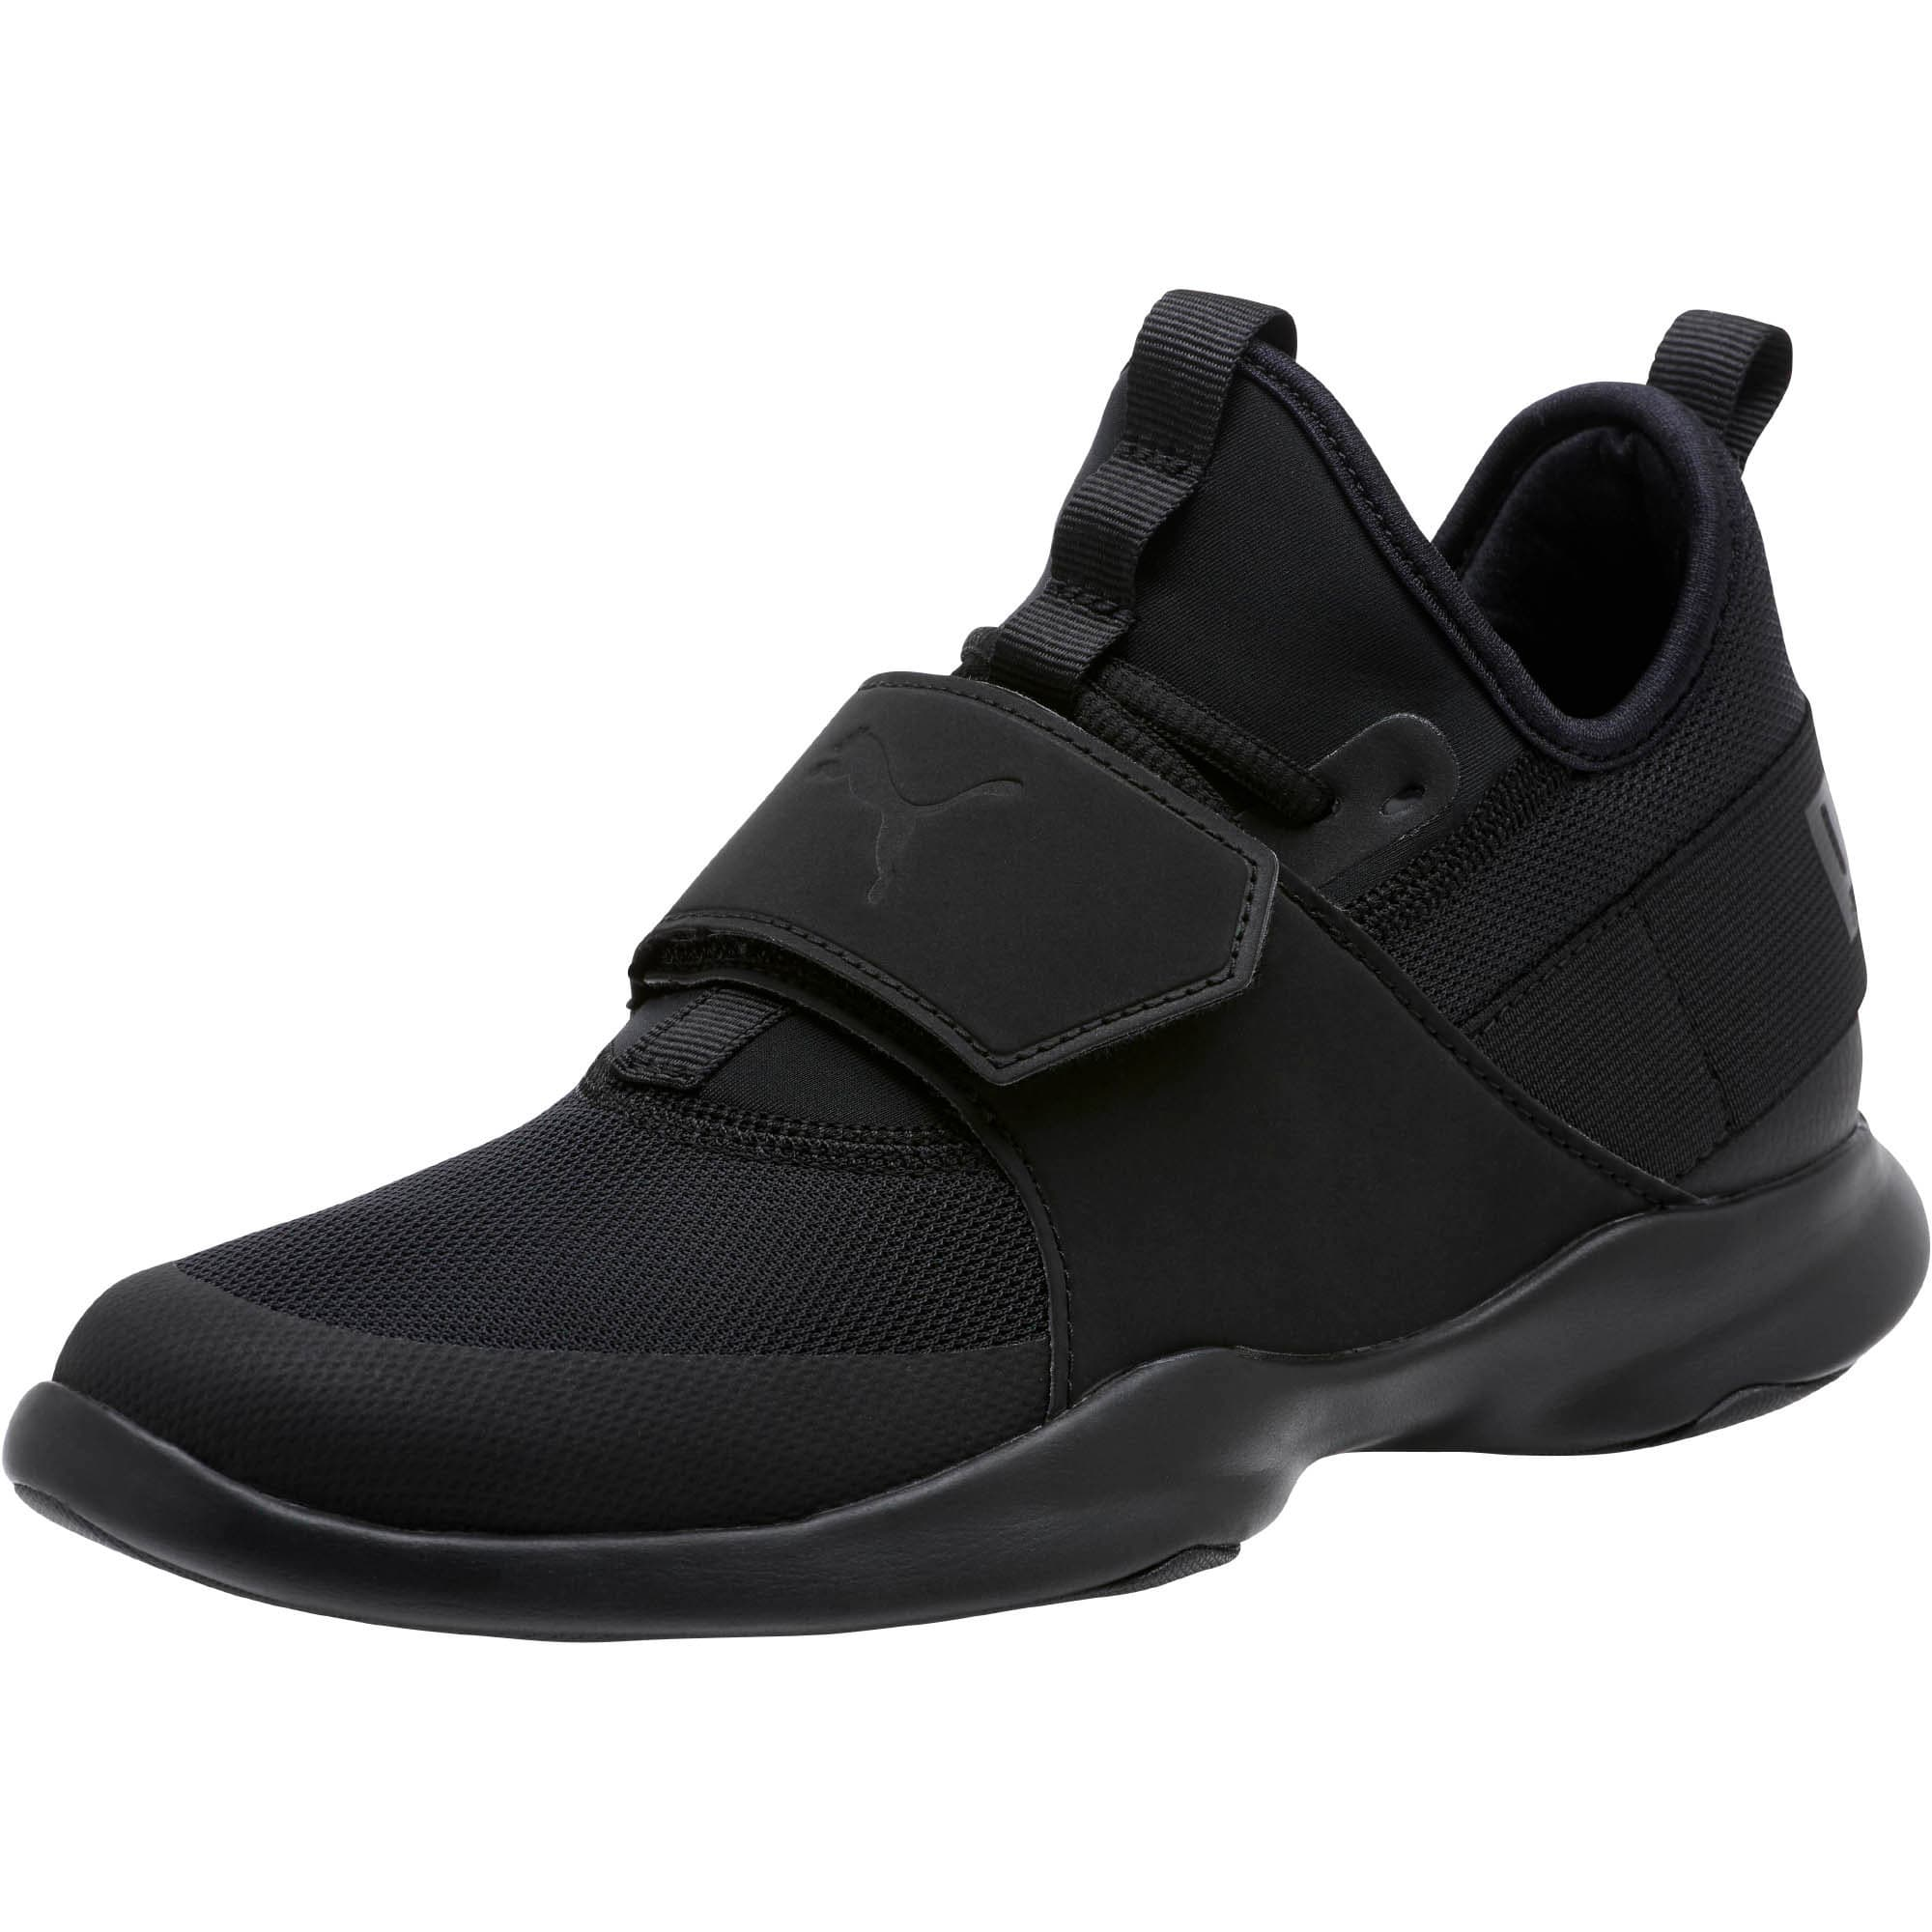 Thumbnail 1 of Dare Trainer Women's Trainers, Puma Black-Puma Black, medium